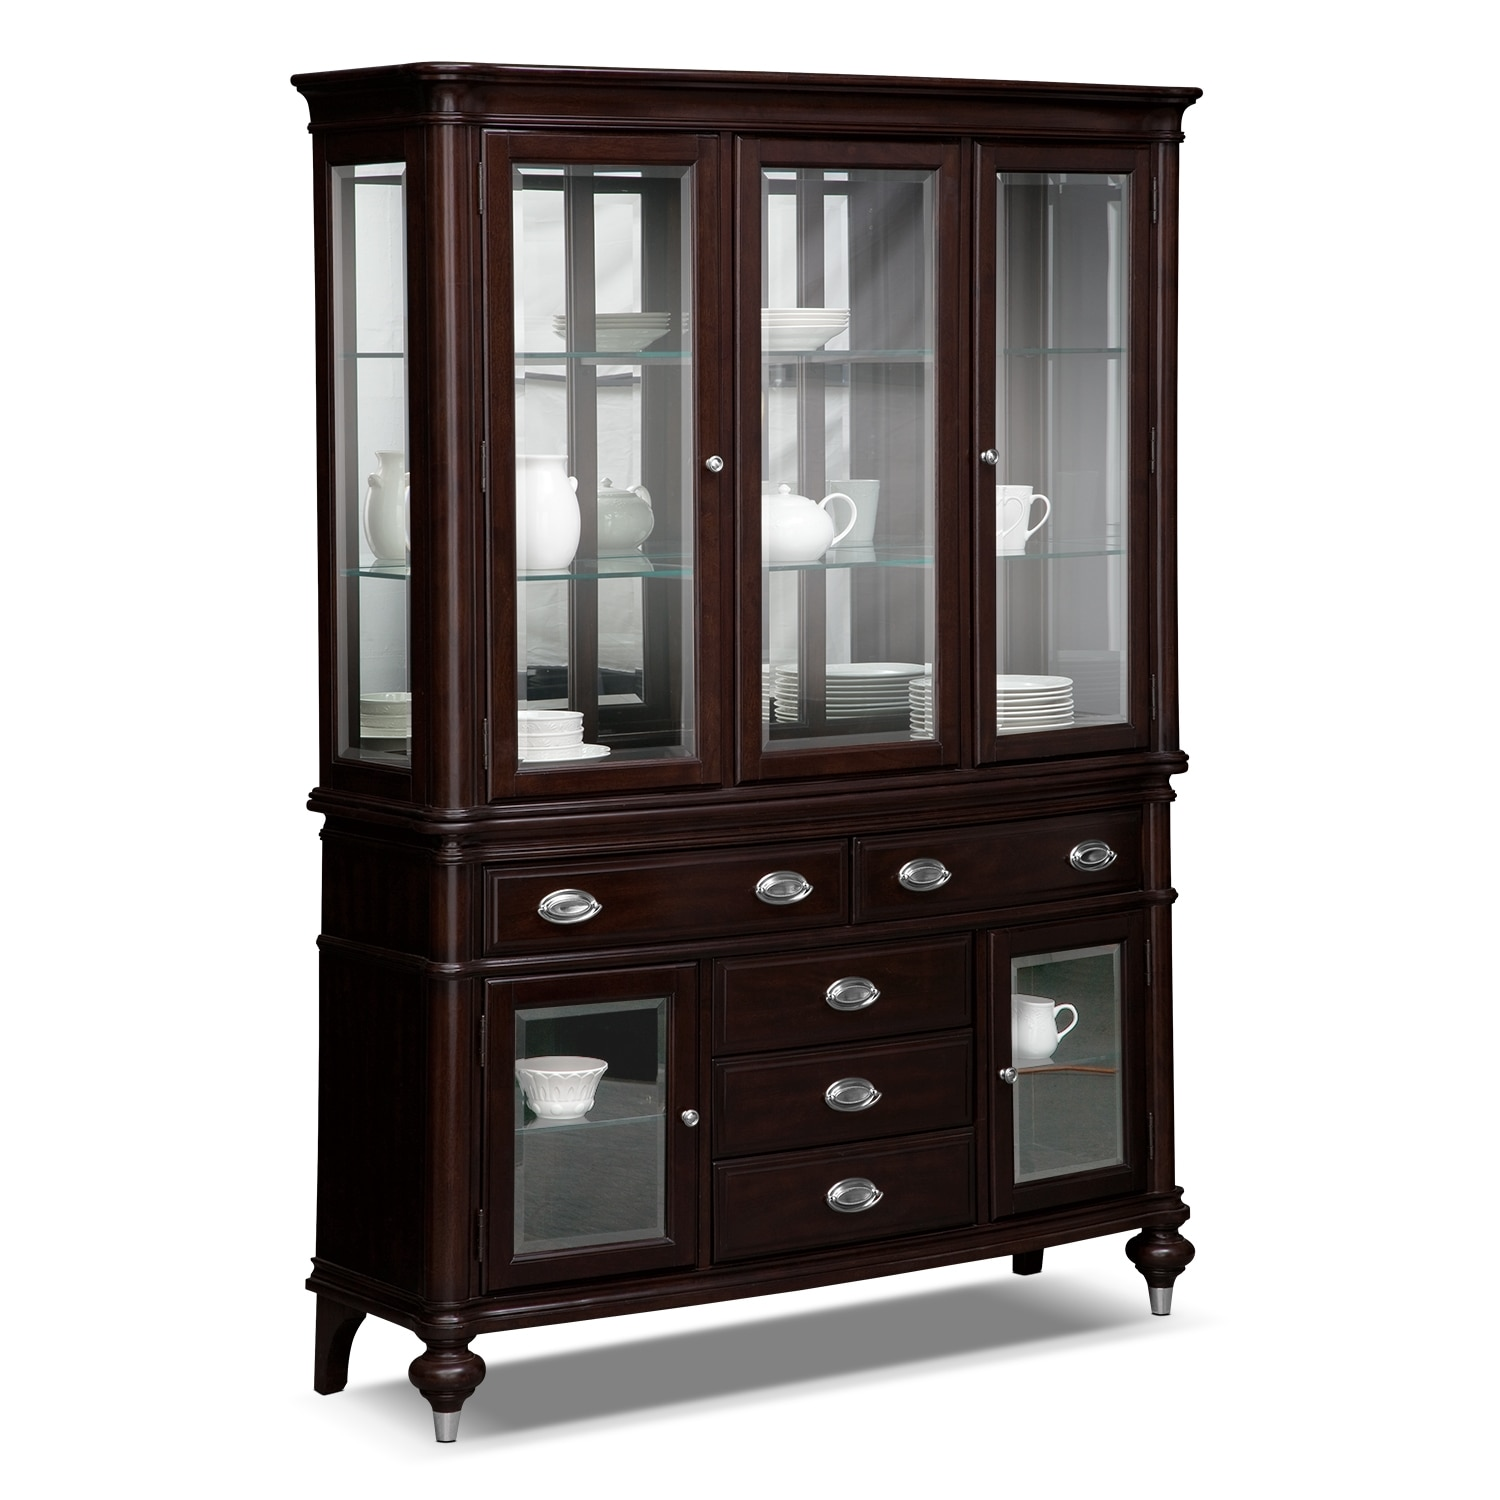 City Furniture Dining Room Esquire Dining Room Buffet And Hutch Value City Furniture Carturra